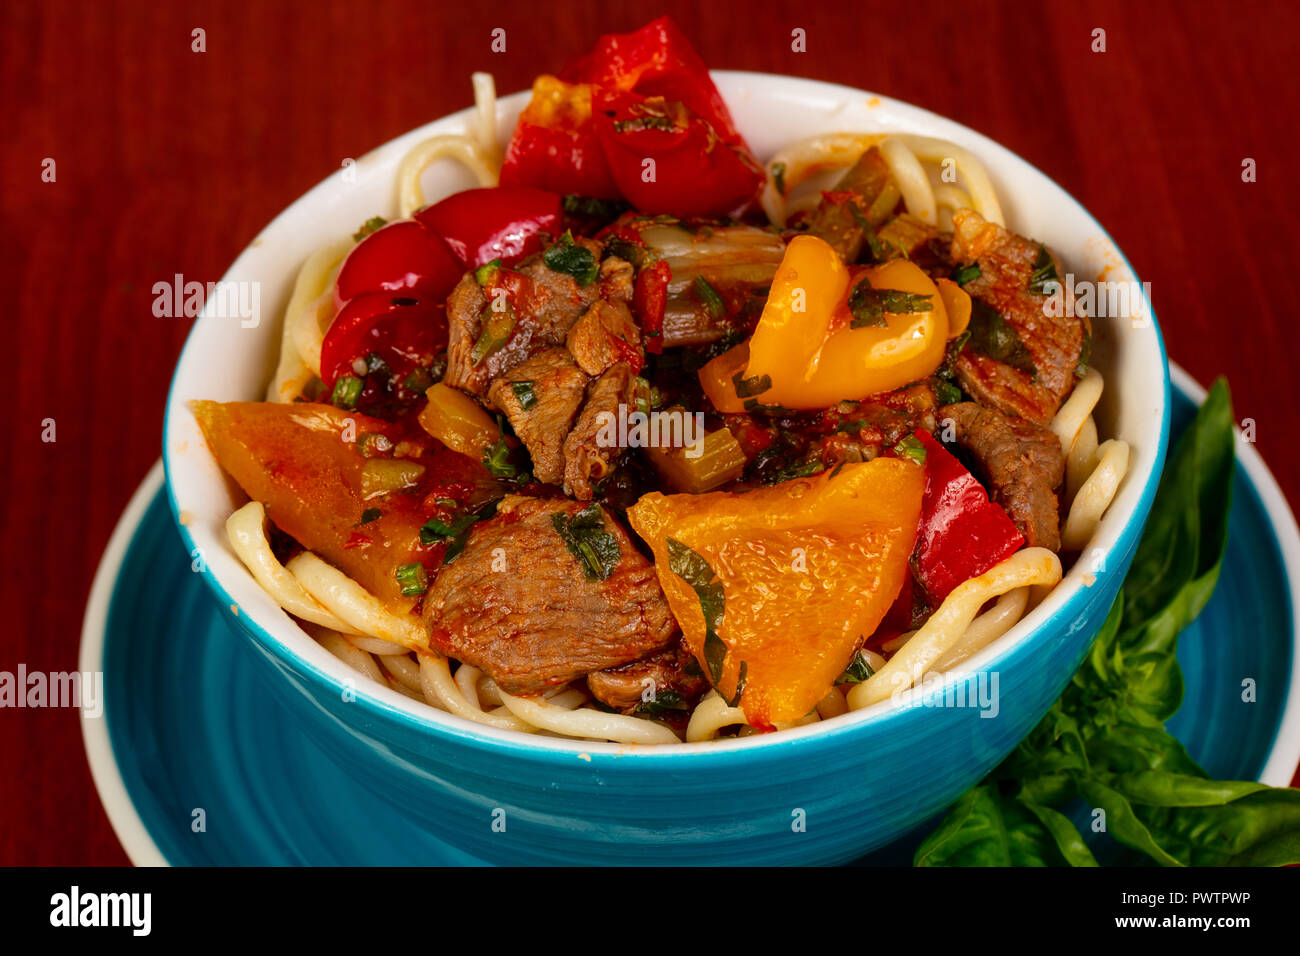 Usbek cuisine - lagman  with meat Stock Photo